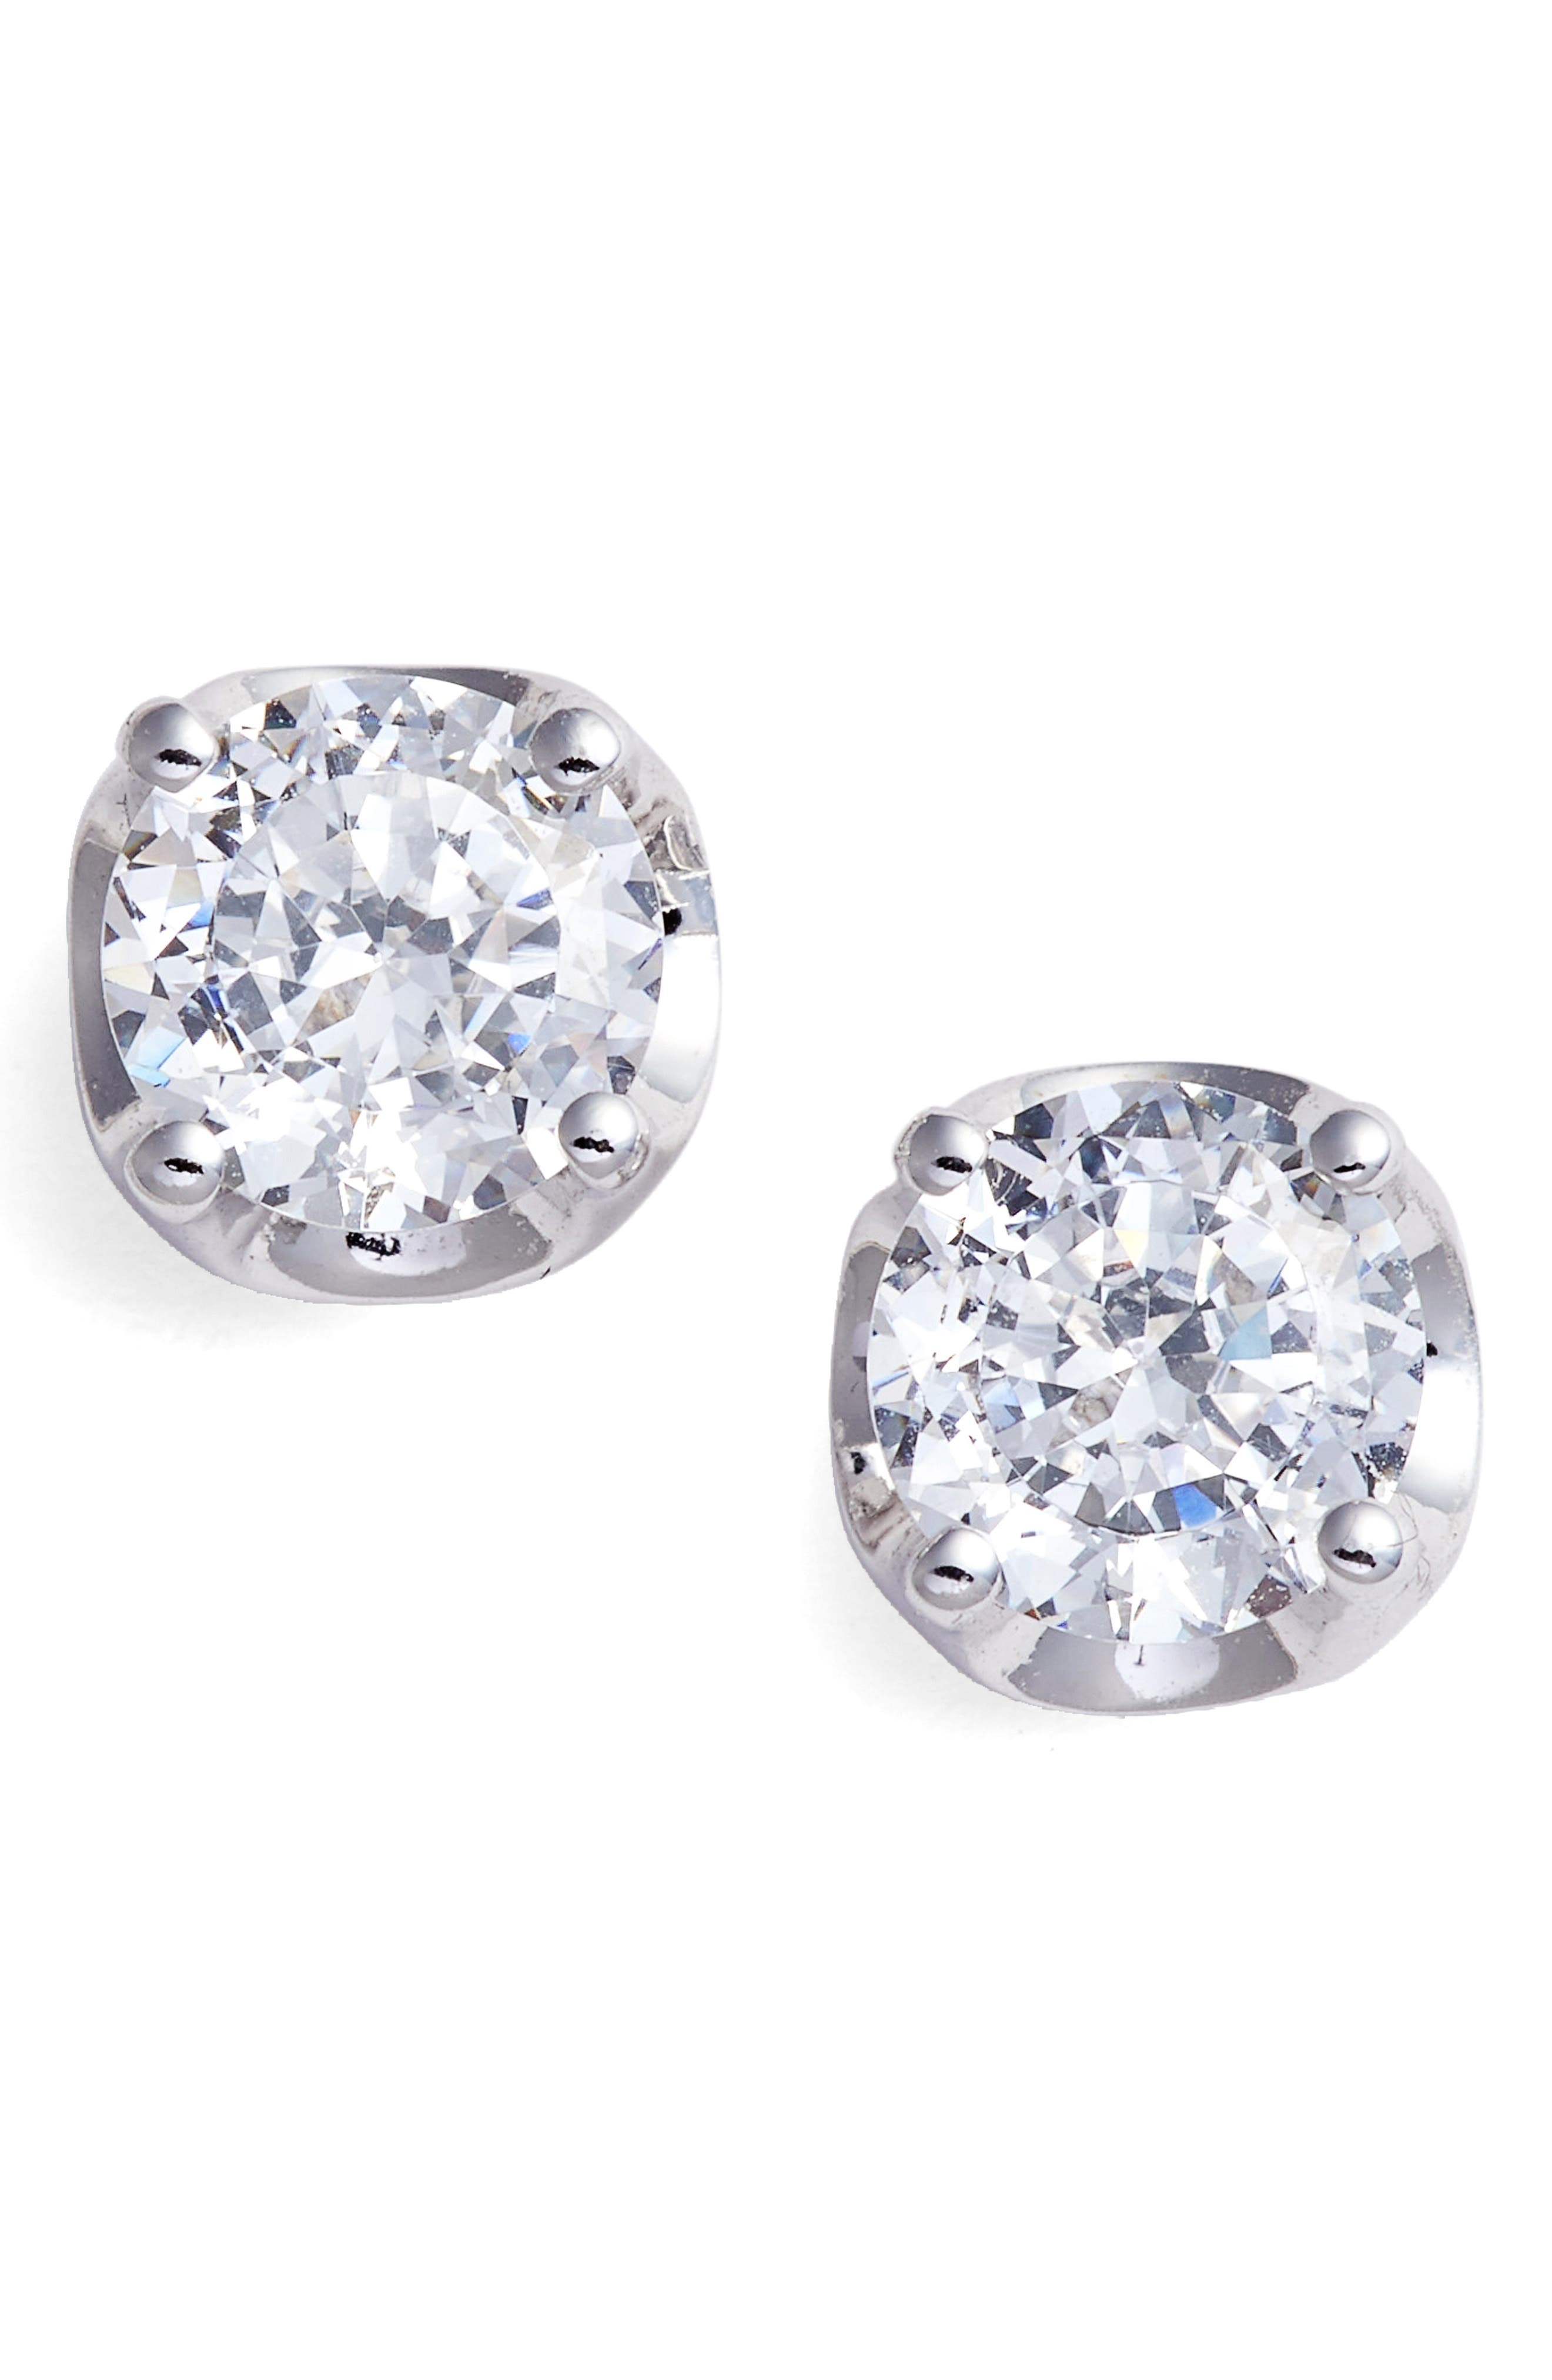 Simulated Diamond Earrings,                             Main thumbnail 1, color,                             Silver/ Clear